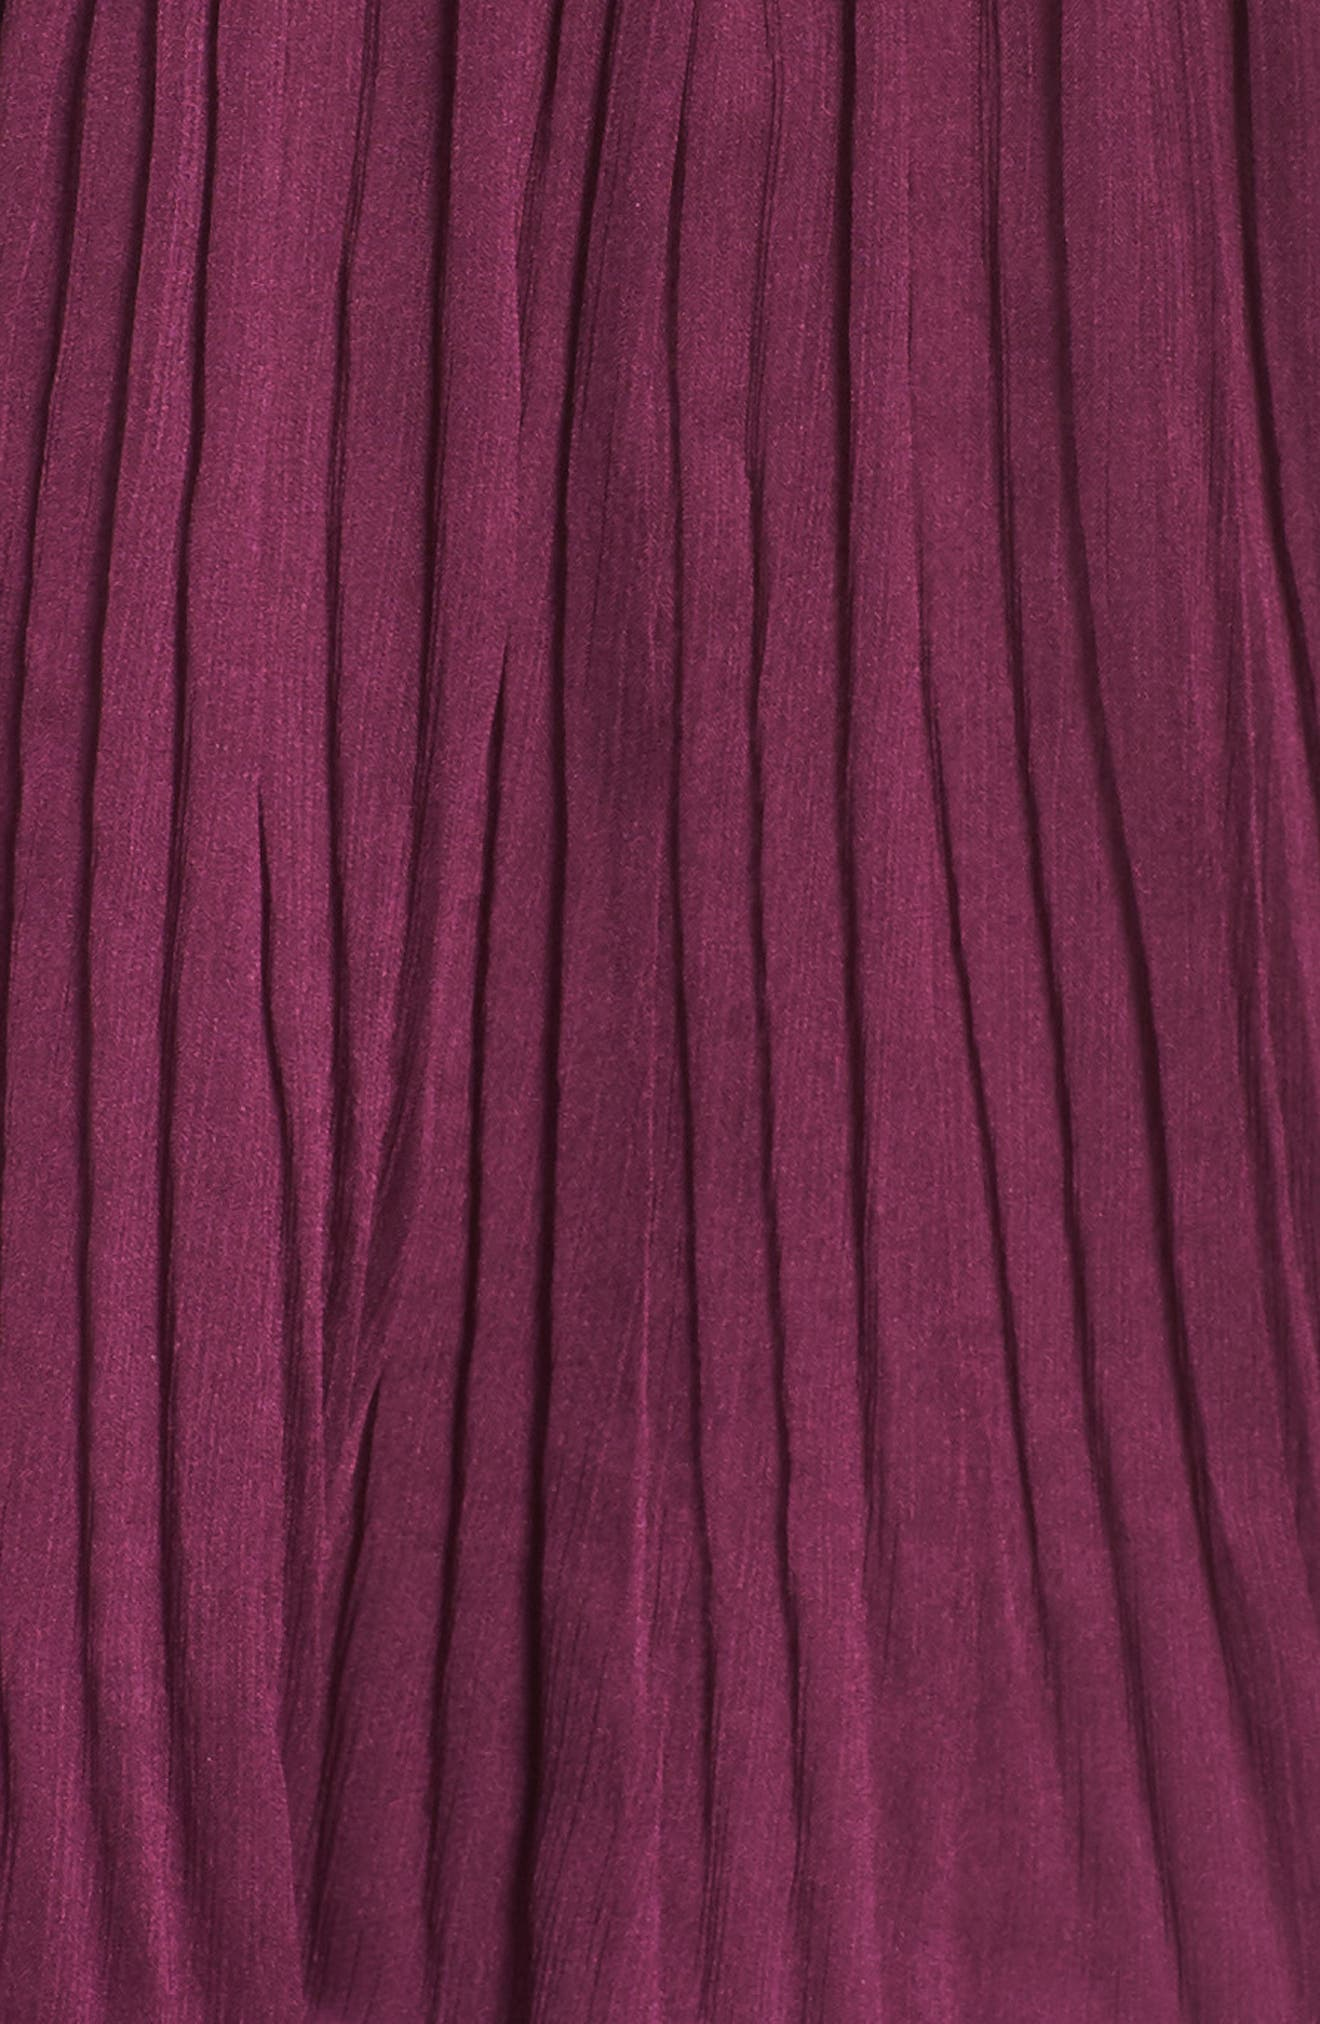 Tiered Skirt Midi Dress,                             Alternate thumbnail 6, color,                             PURPLE DARK